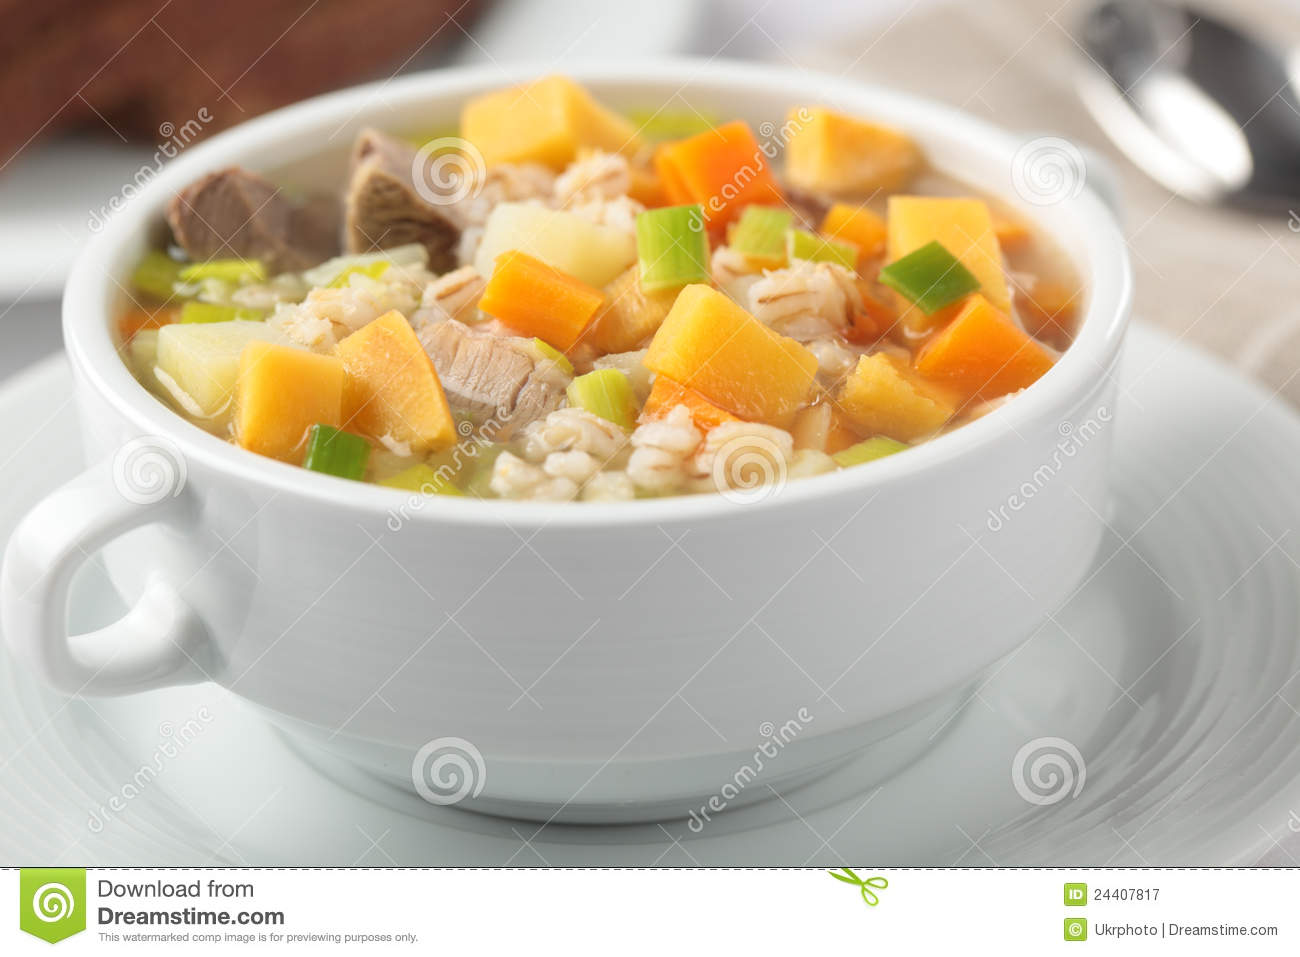 Scotch Broth Royalty Free Stock Photography - Image: 24407817